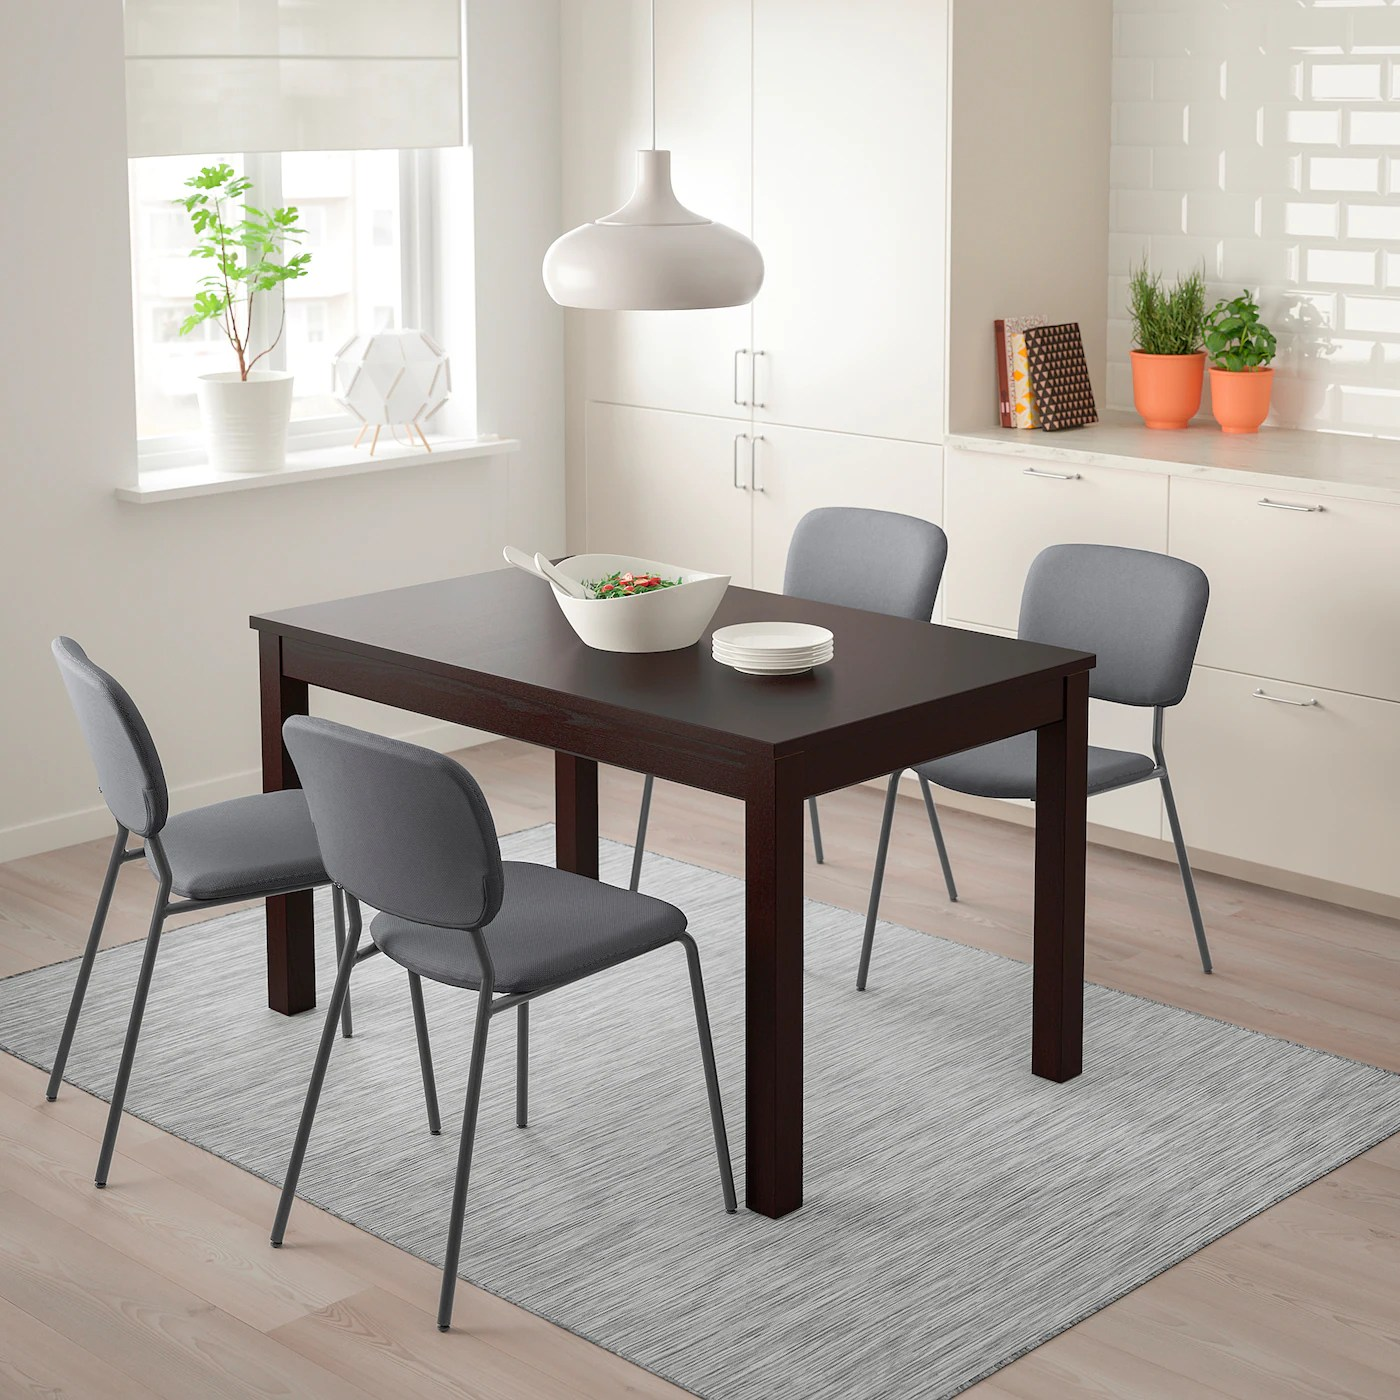 Laneberg Extendable Table Brown Ikea